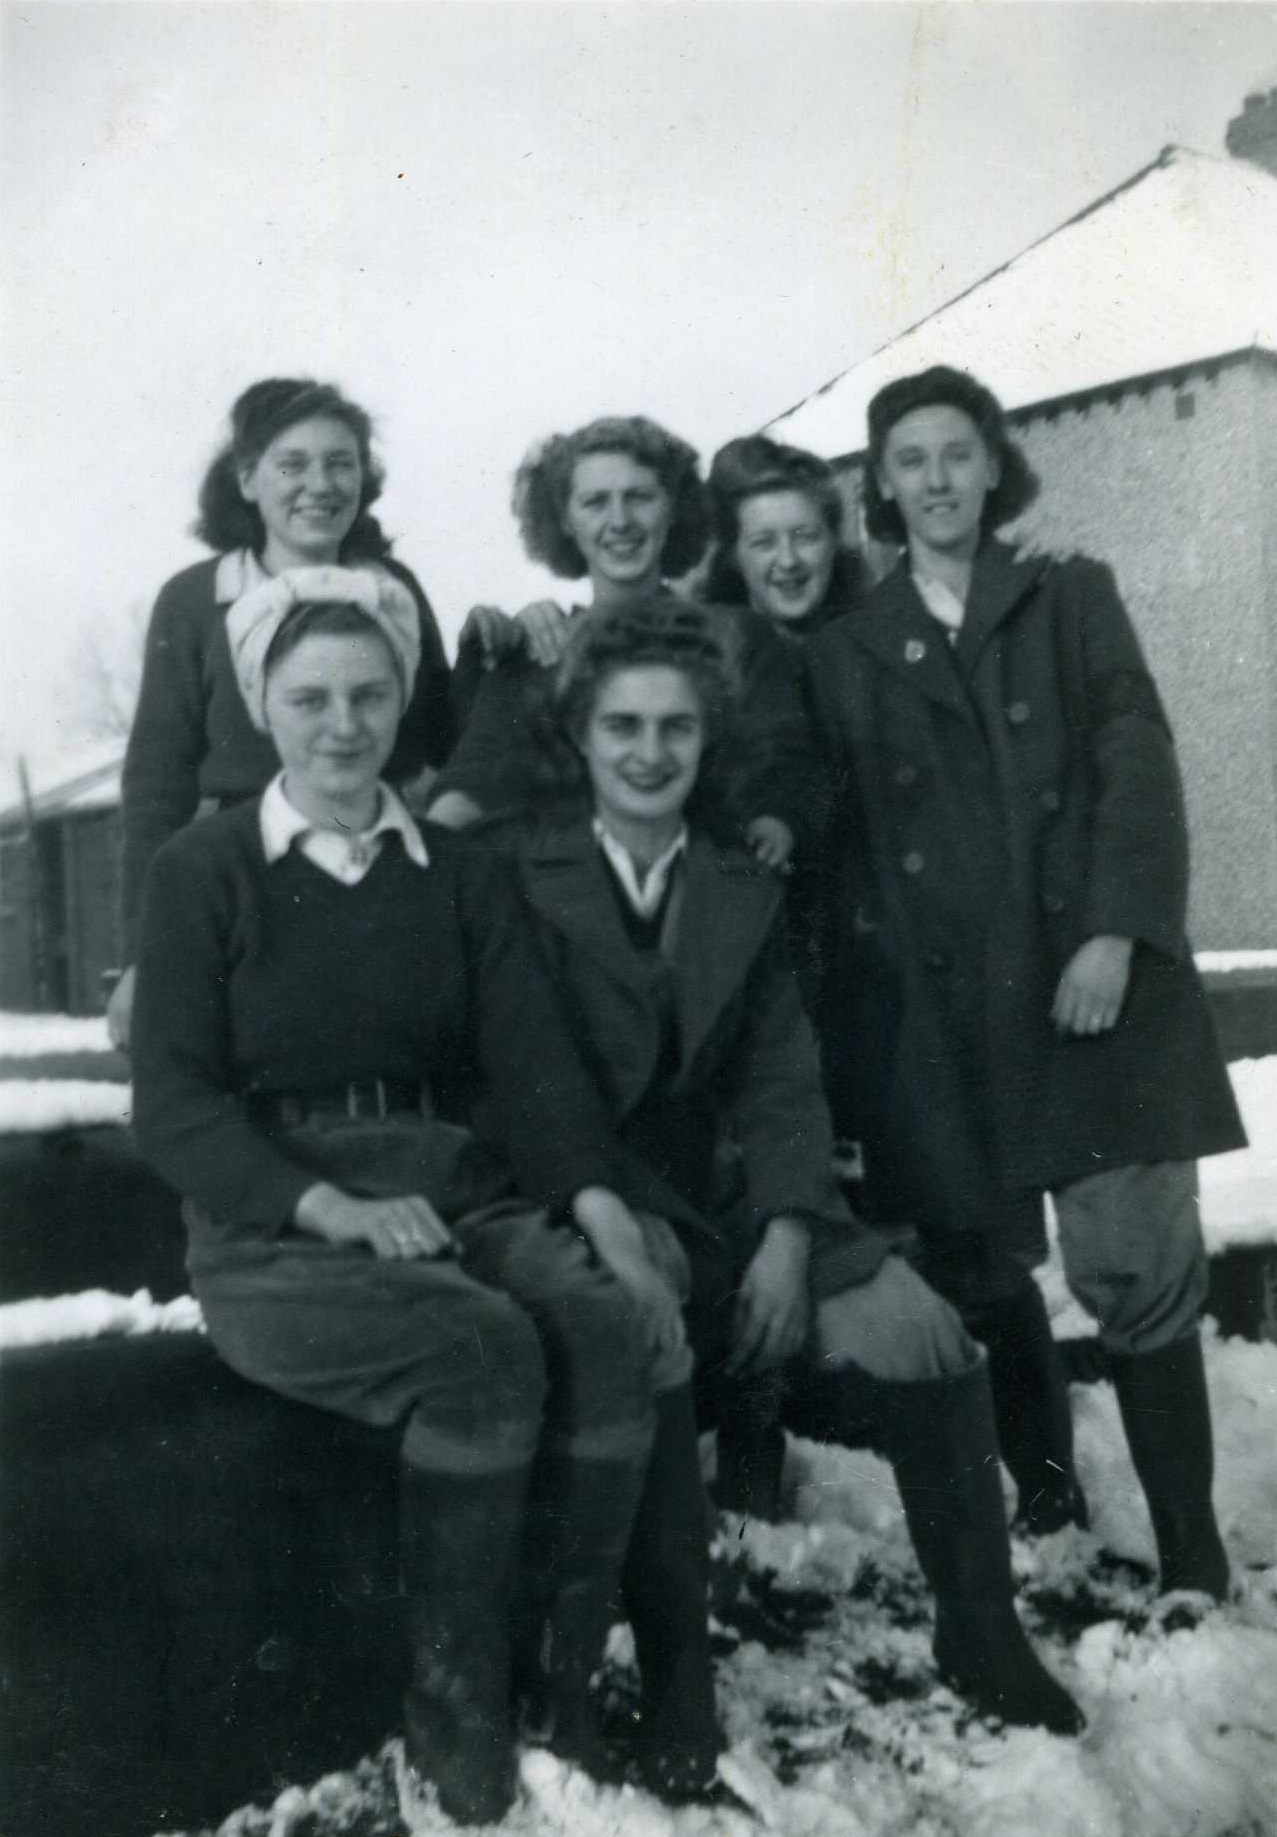 Land Army Girls in Snow outside the Braunston Hostel